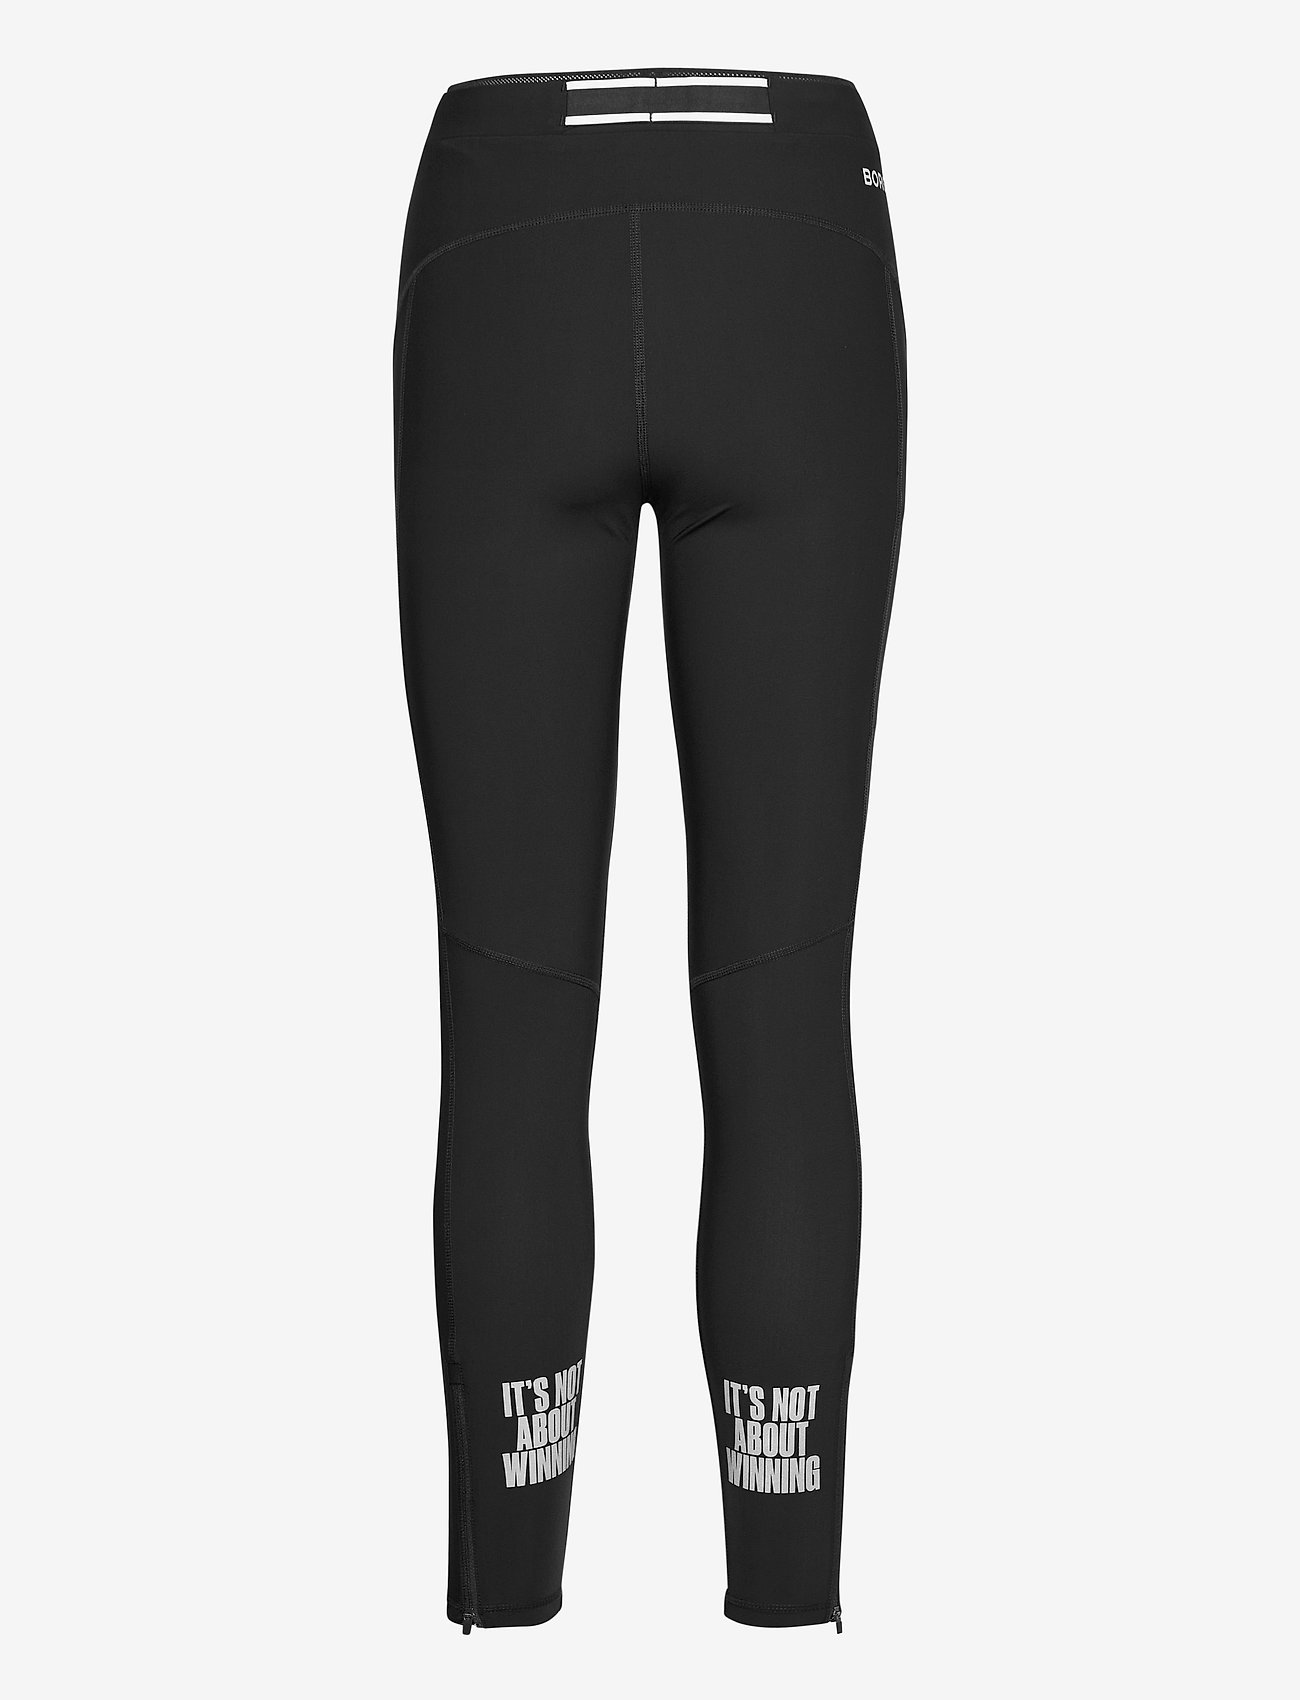 Björn Borg - TIGHTS W NIGHT NIGHT - running & training tights - black beauty - 1